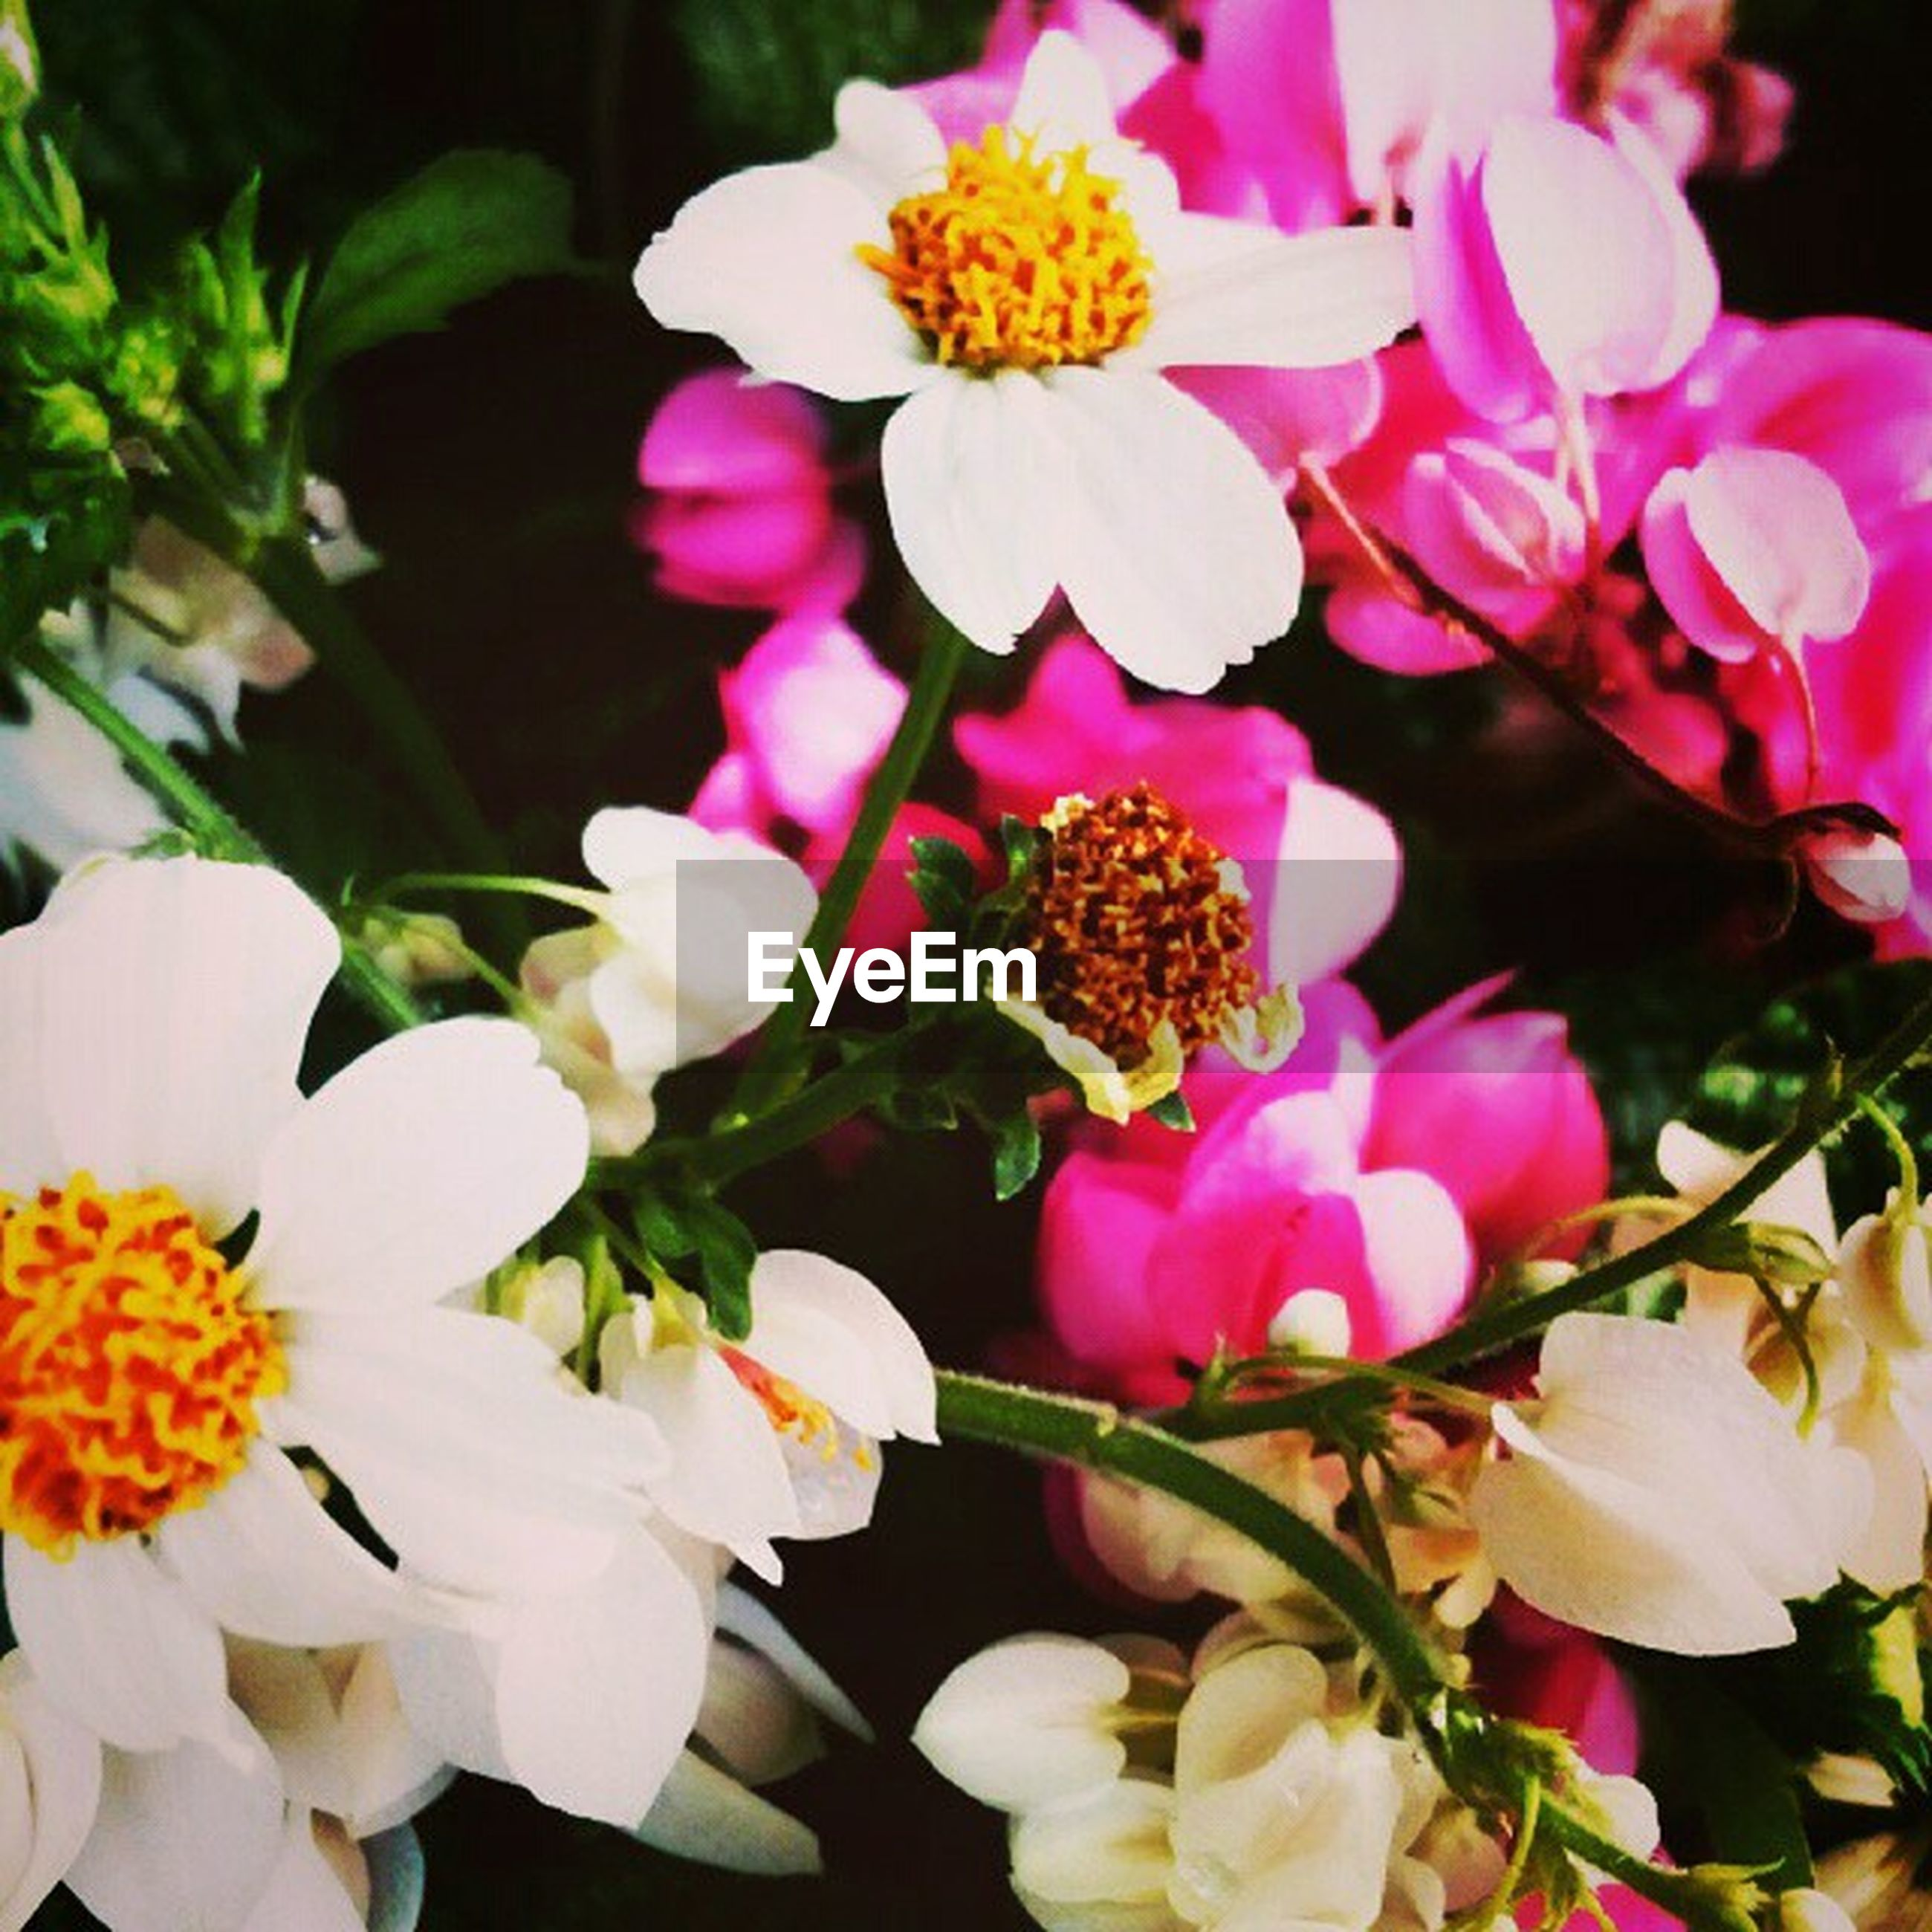 flower, petal, freshness, fragility, flower head, beauty in nature, growth, blooming, nature, close-up, pollen, pink color, focus on foreground, plant, blossom, in bloom, stamen, park - man made space, yellow, outdoors